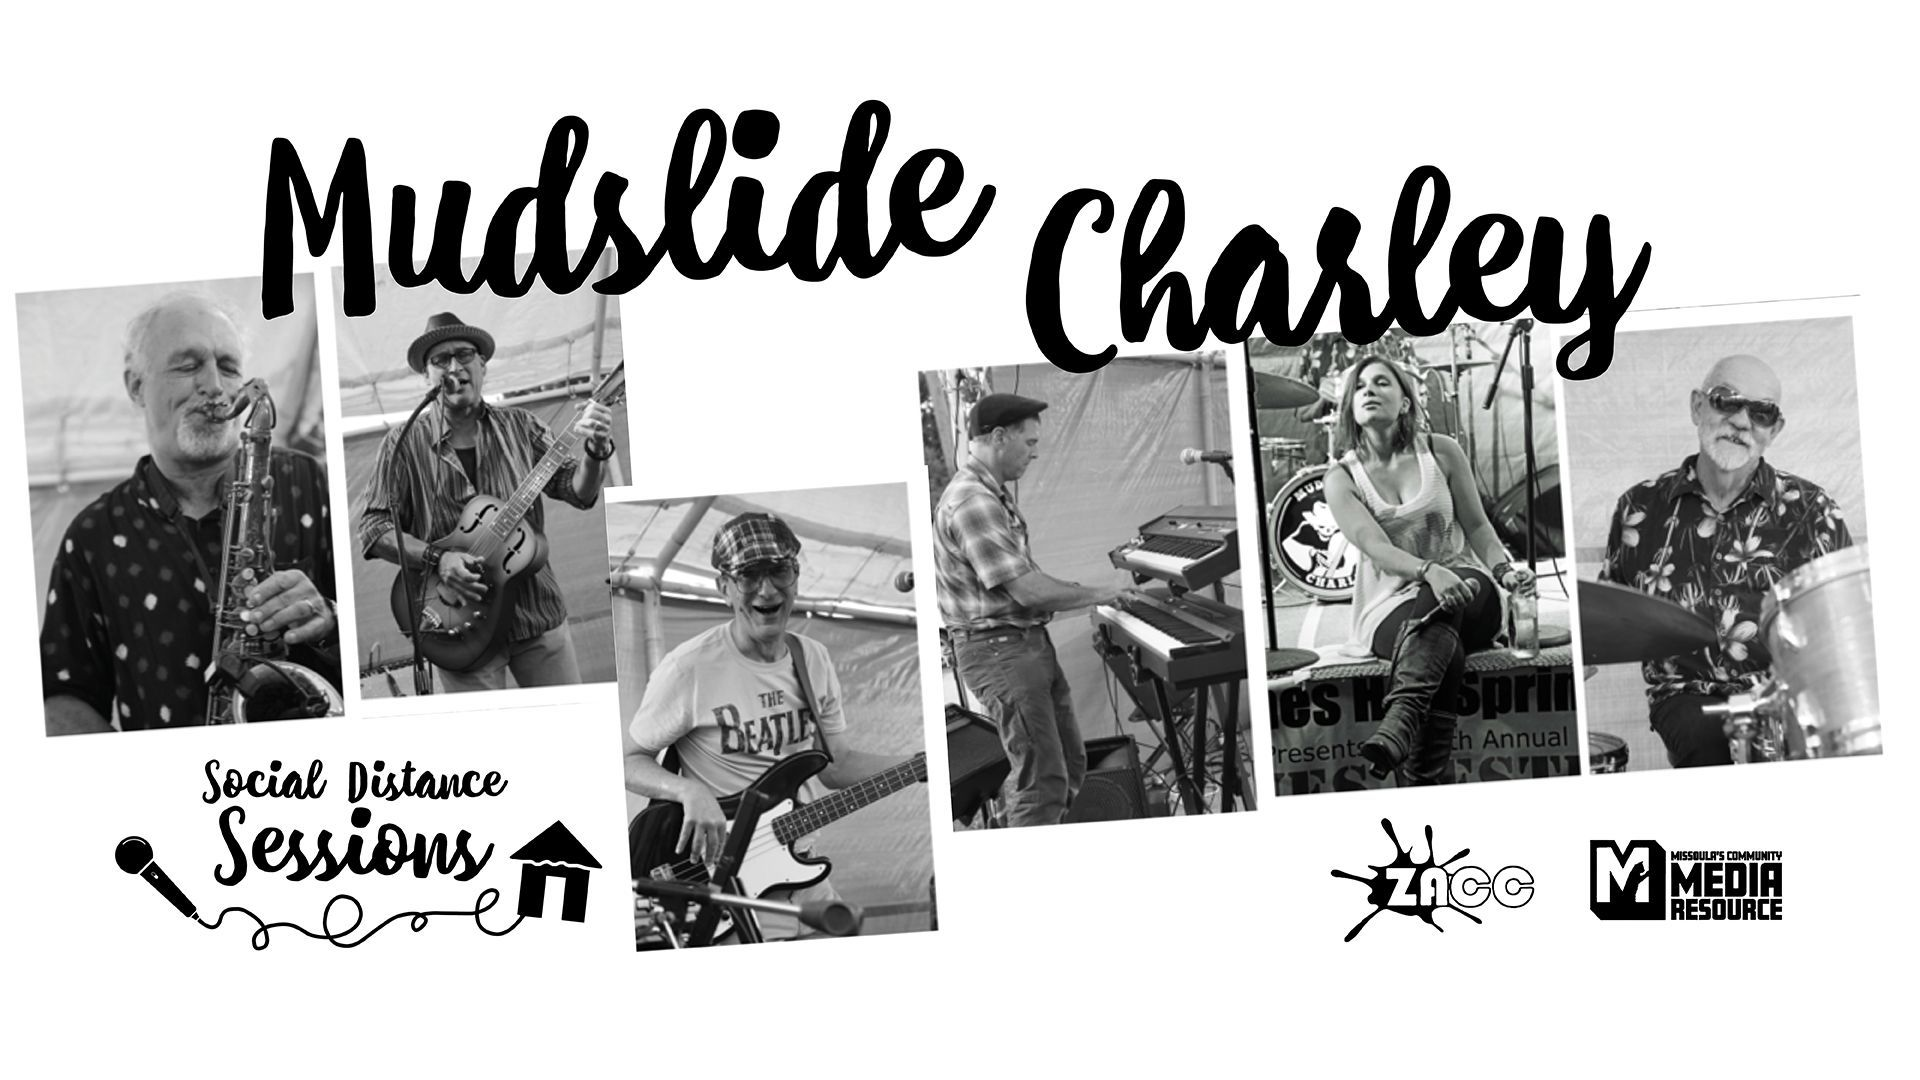 Social Distance Sessions: Mudslide Charley